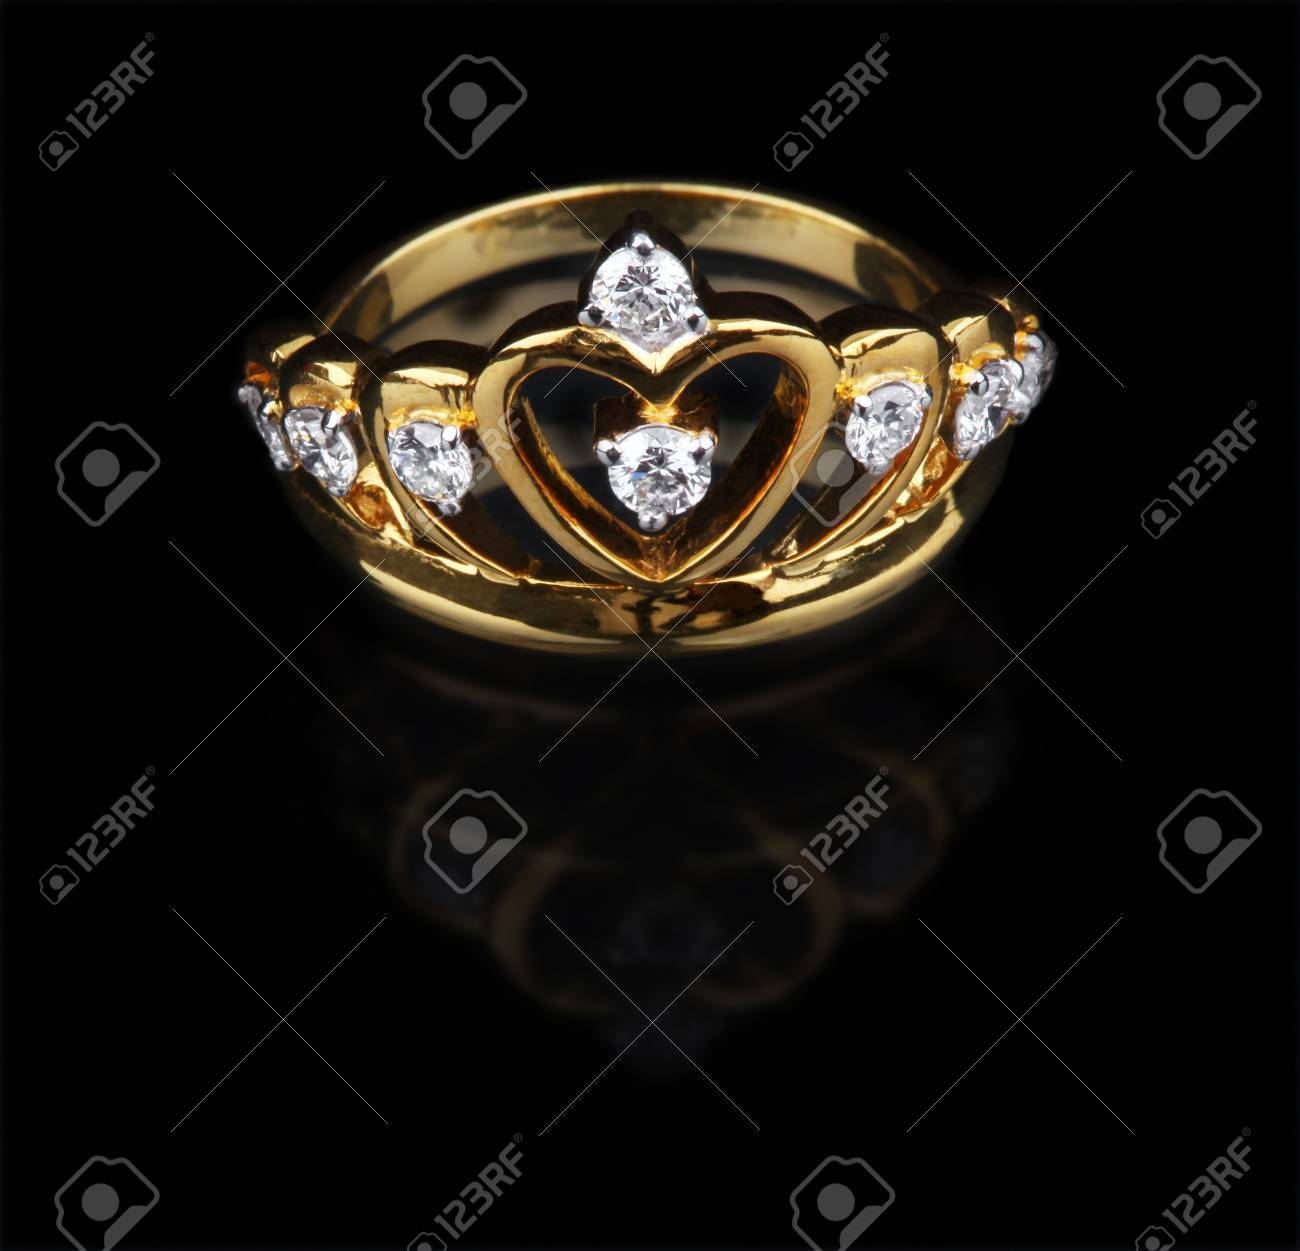 diamond earrings shop aria golden buy